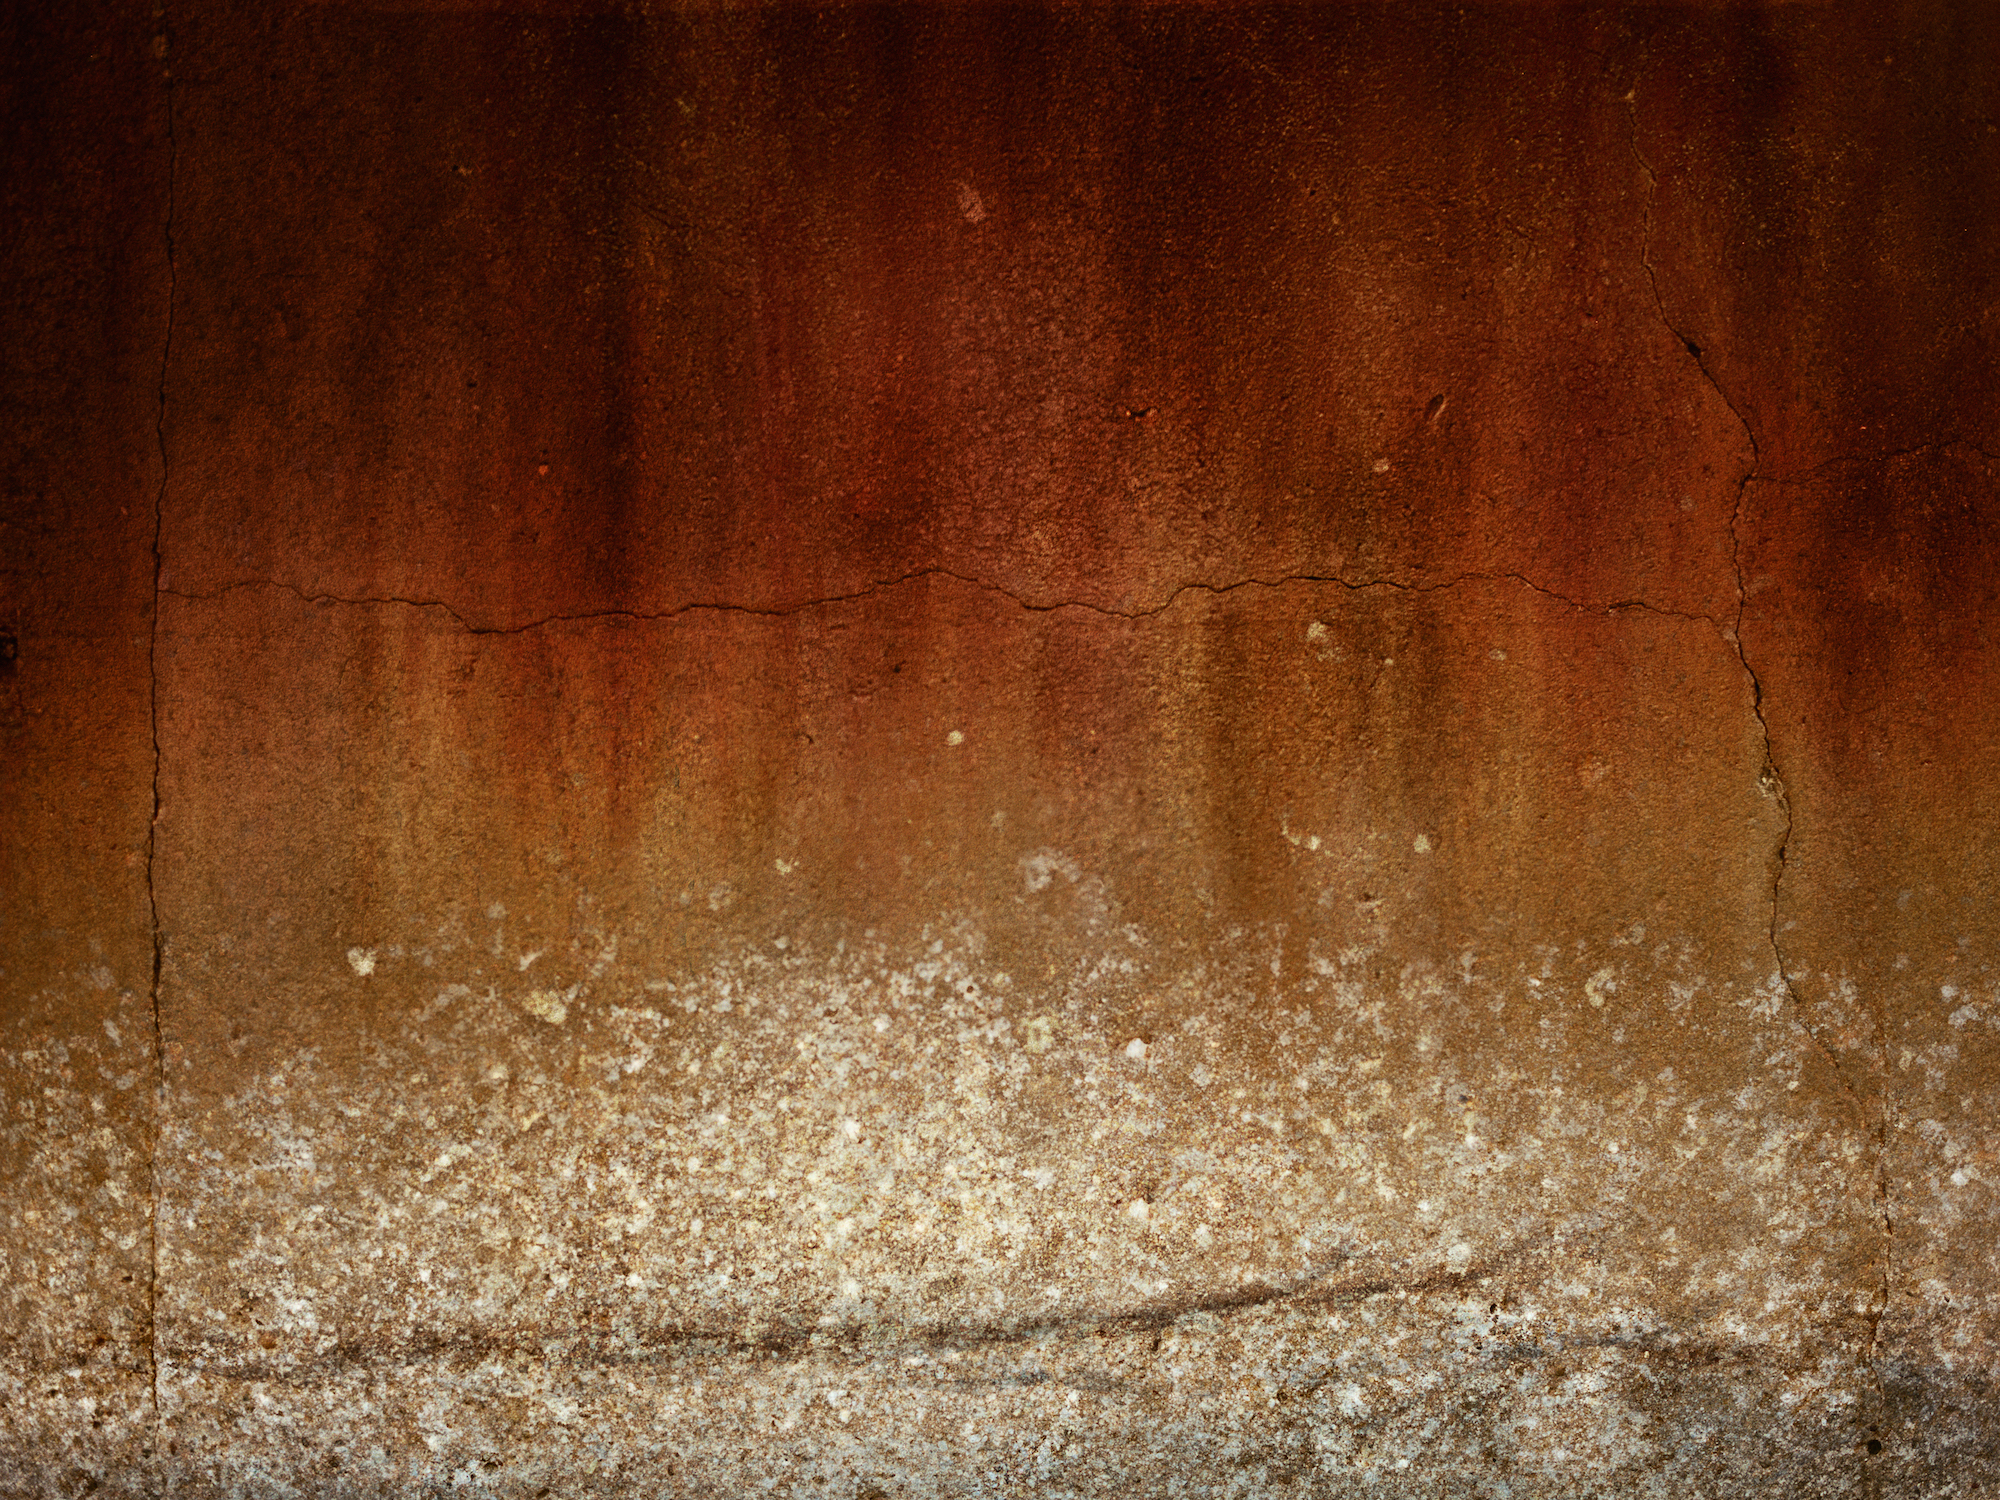 Untitled #2  (Nowhere) , 2012/ archival pigment print, 31 x 41 inches, edition of 3 plus 2 AP